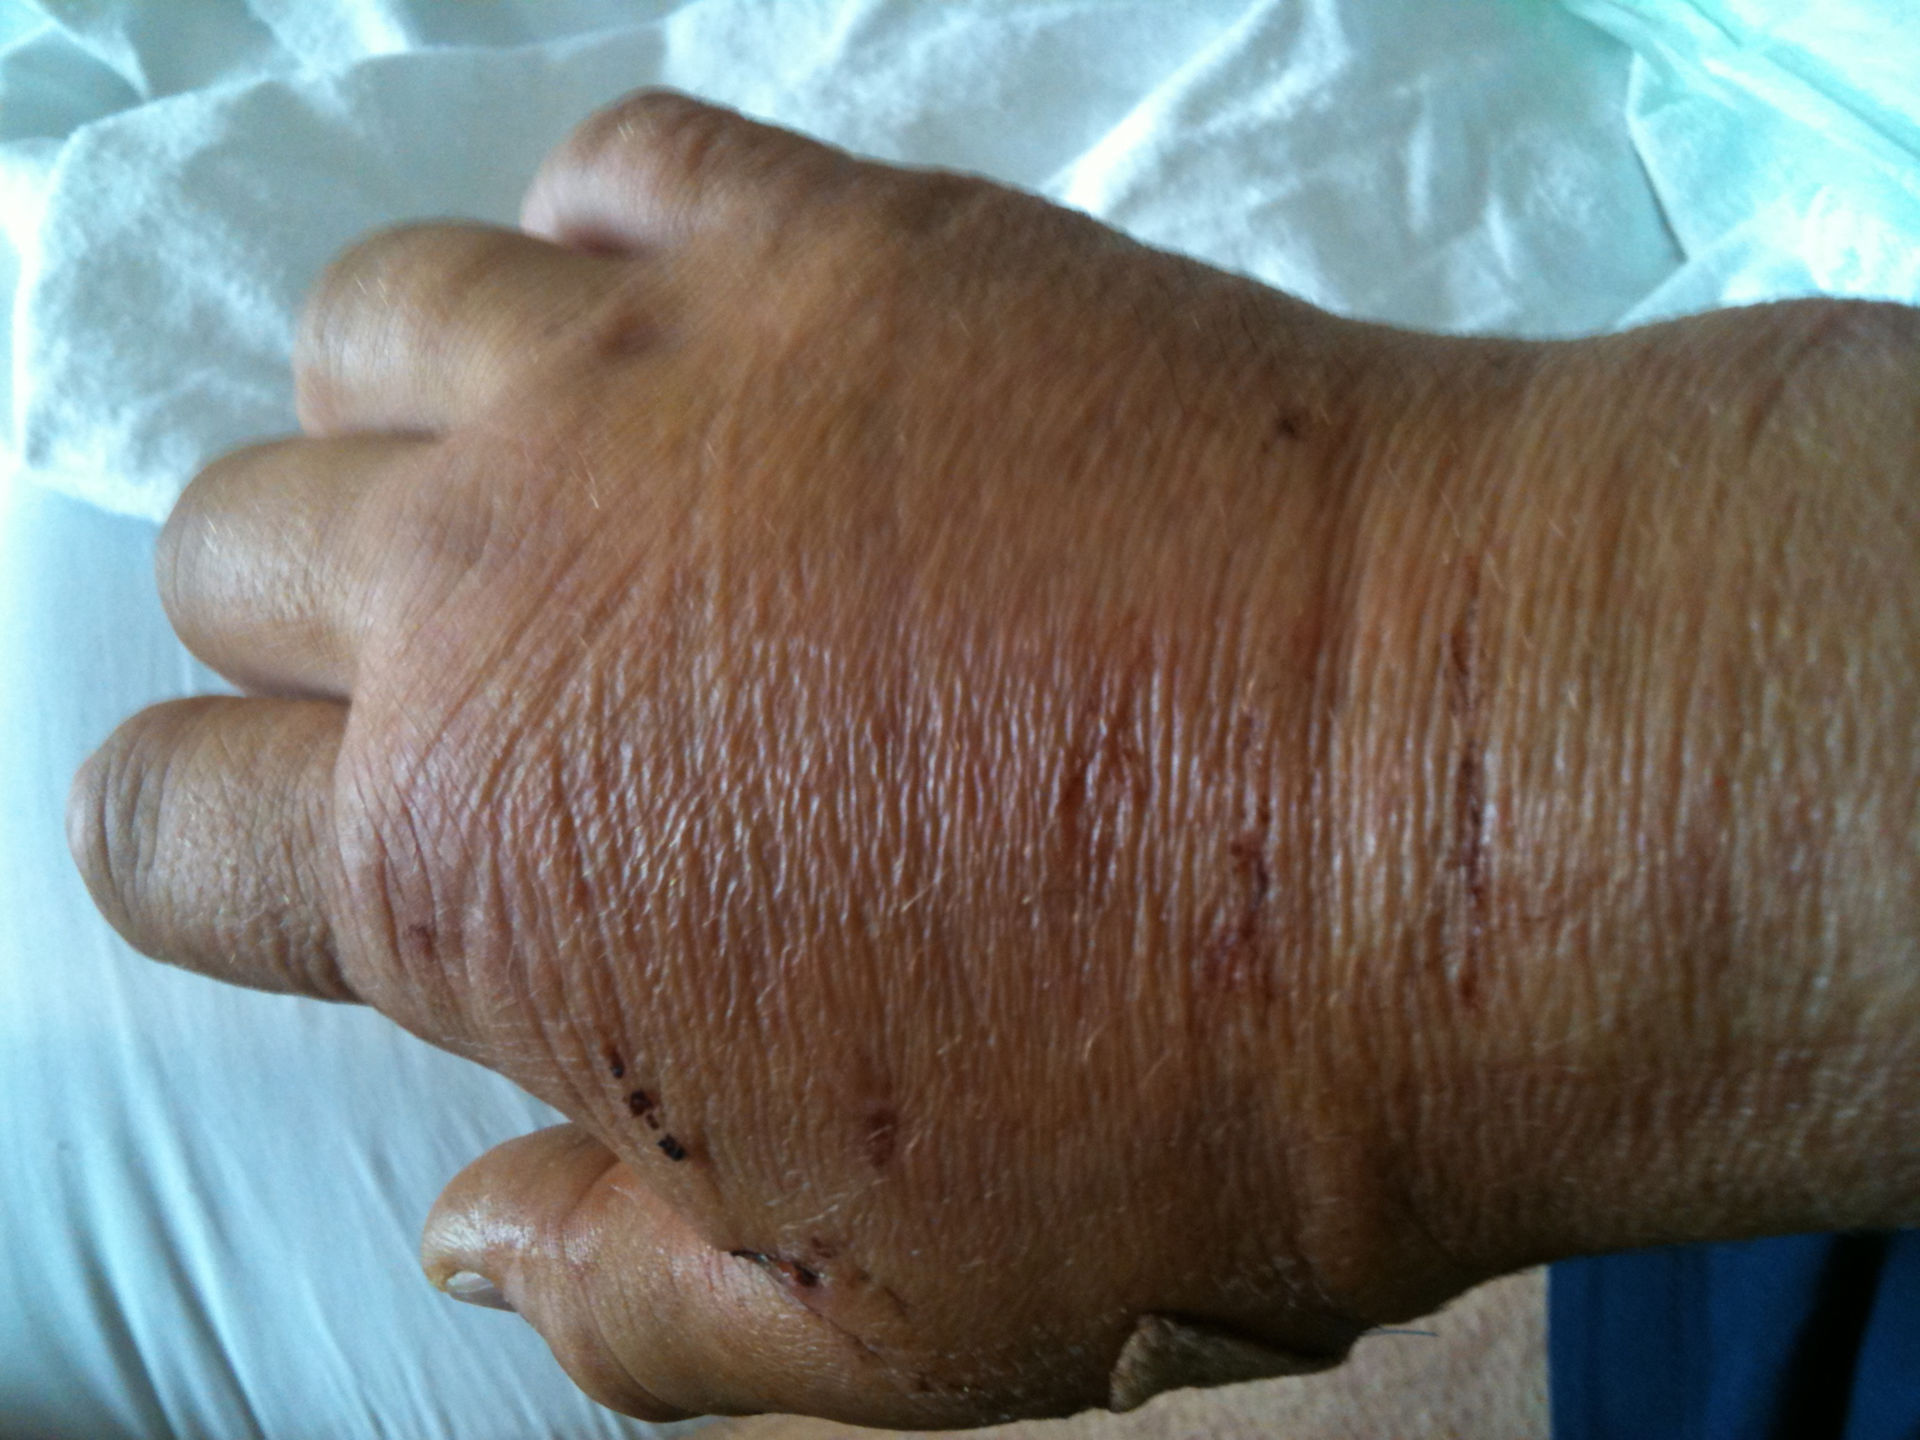 Swelling of the upper right hand